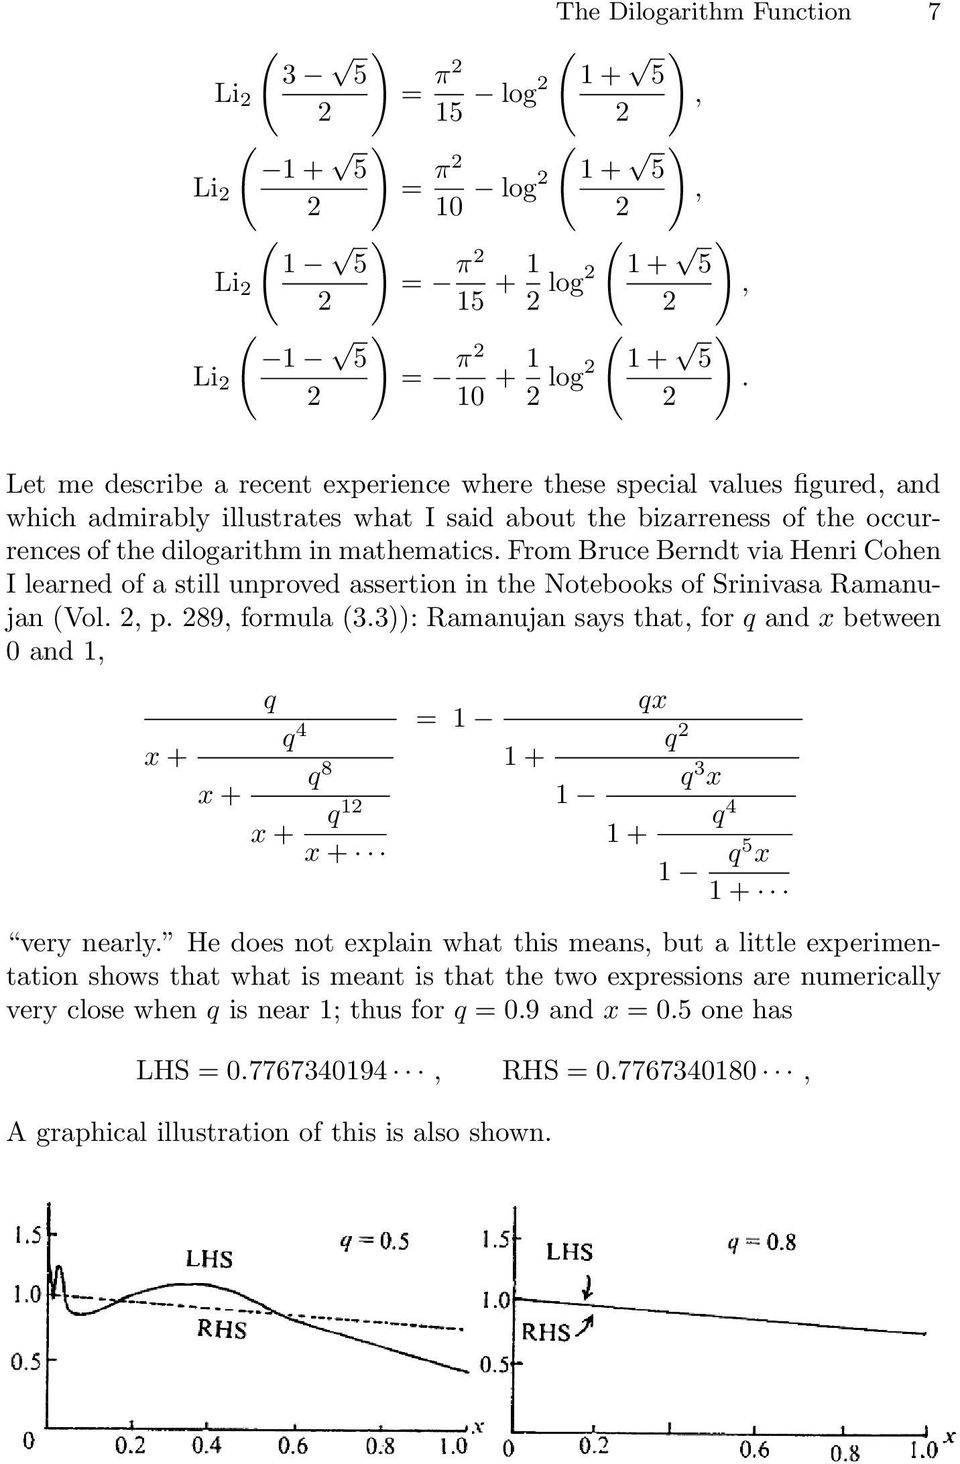 From Bruce Berndt via Henri Cohen I learned of a still unproved assertion in the Notebooks of Srinivasa Ramanujan Vol., p. 89, formula 3.